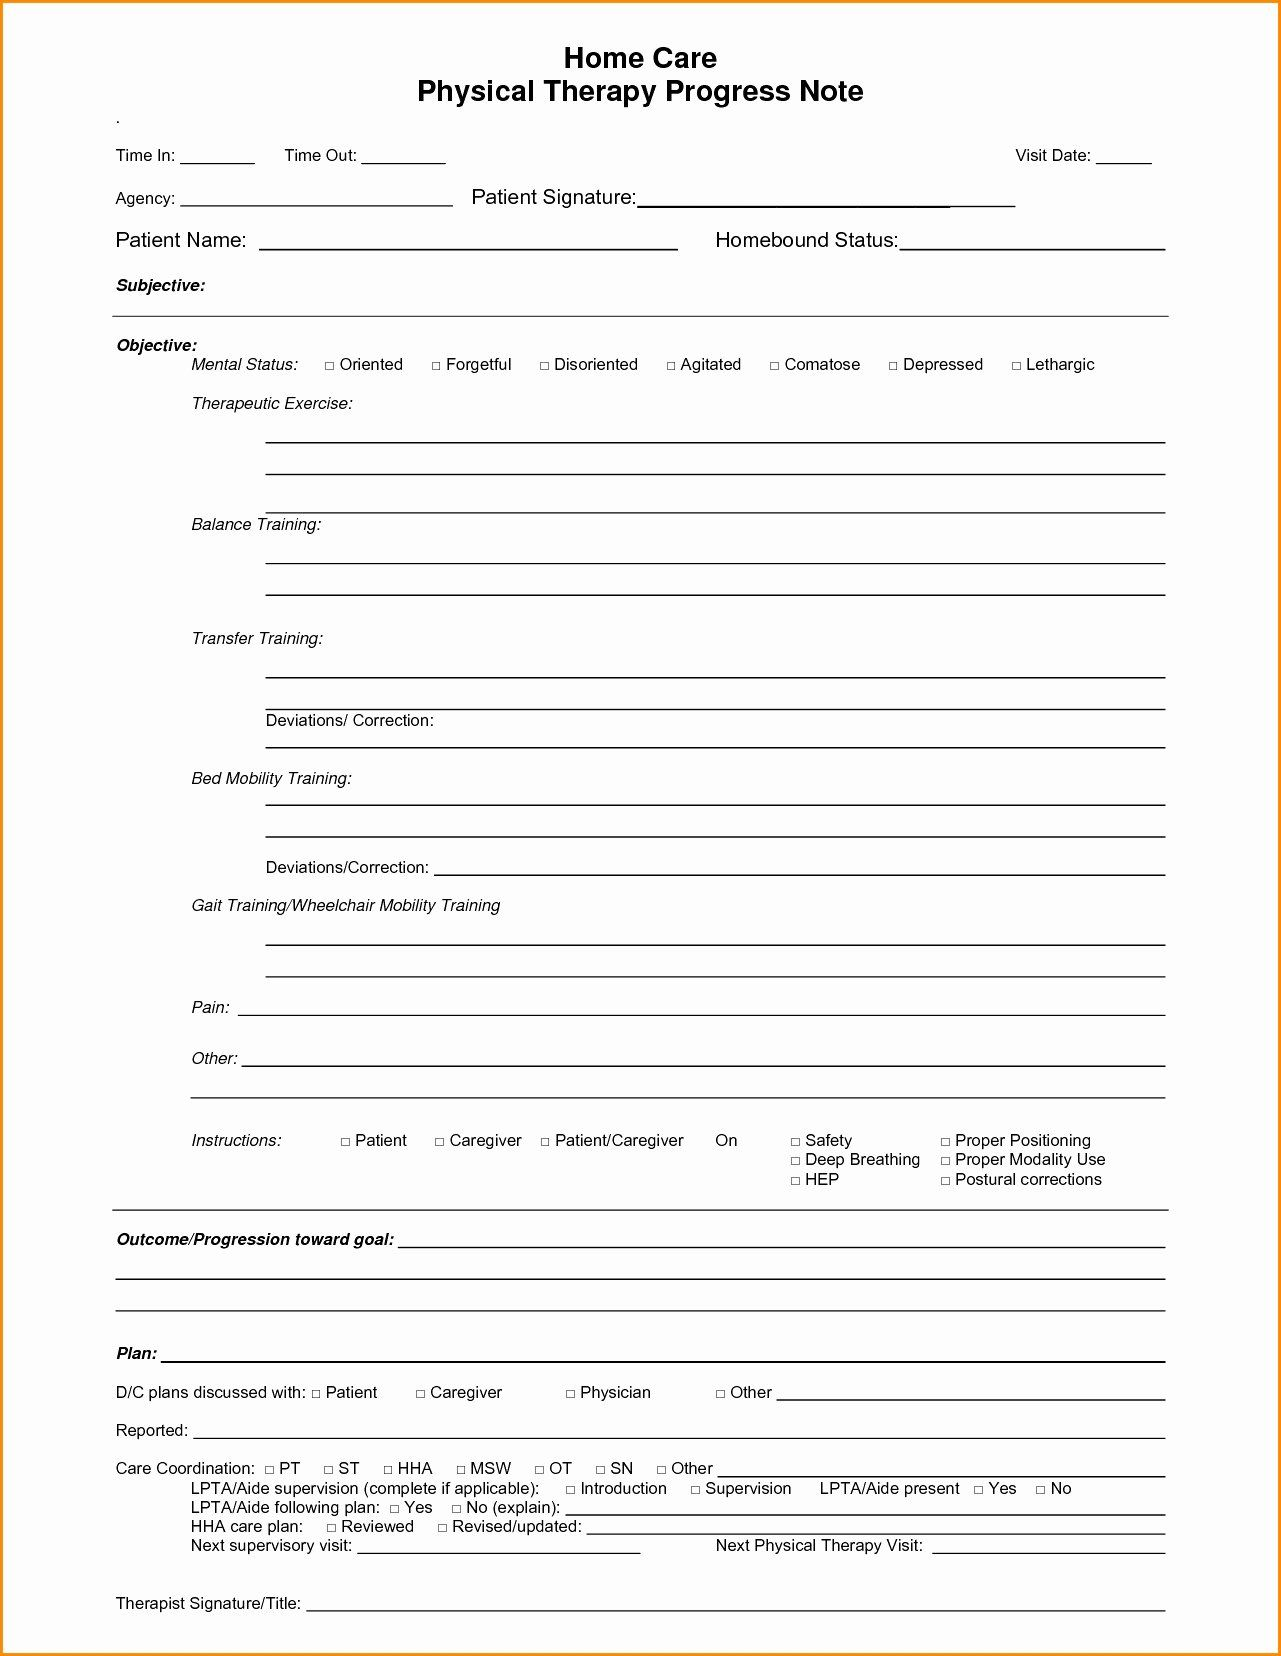 Physical Therapy Progress Note Template In 2020 With Images